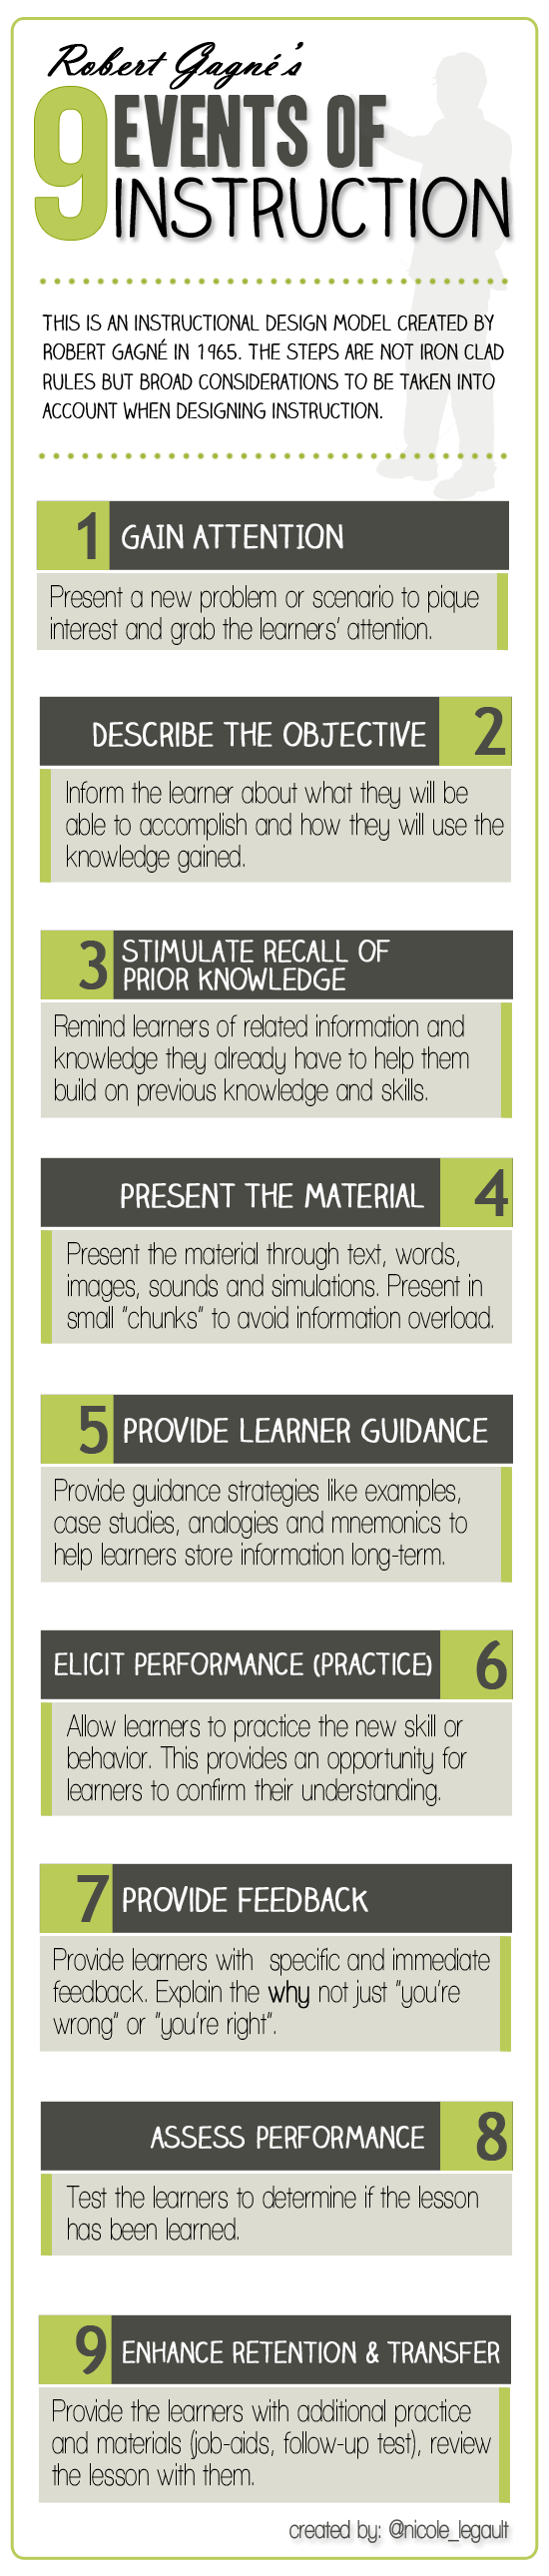 9 Events of Instruction Infographic